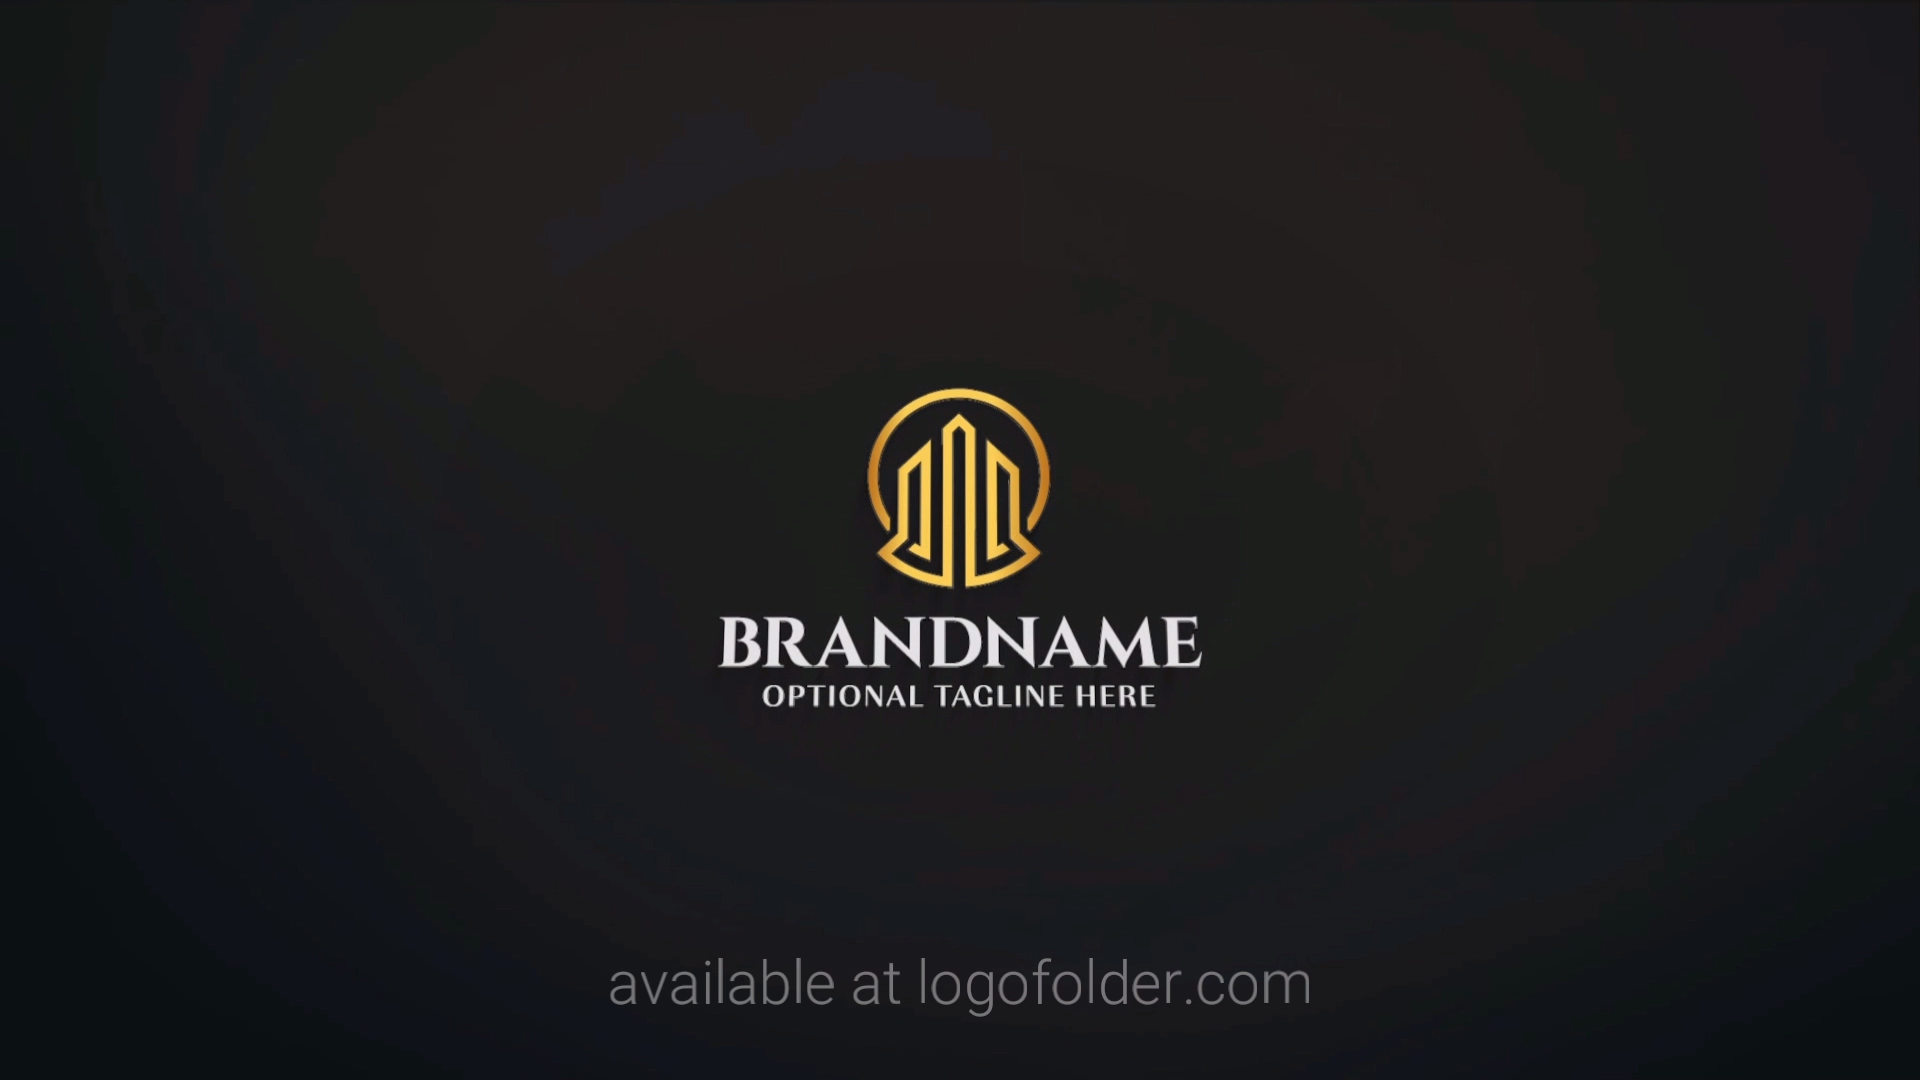 Property Development Logo -   10 planting Logo branding ideas